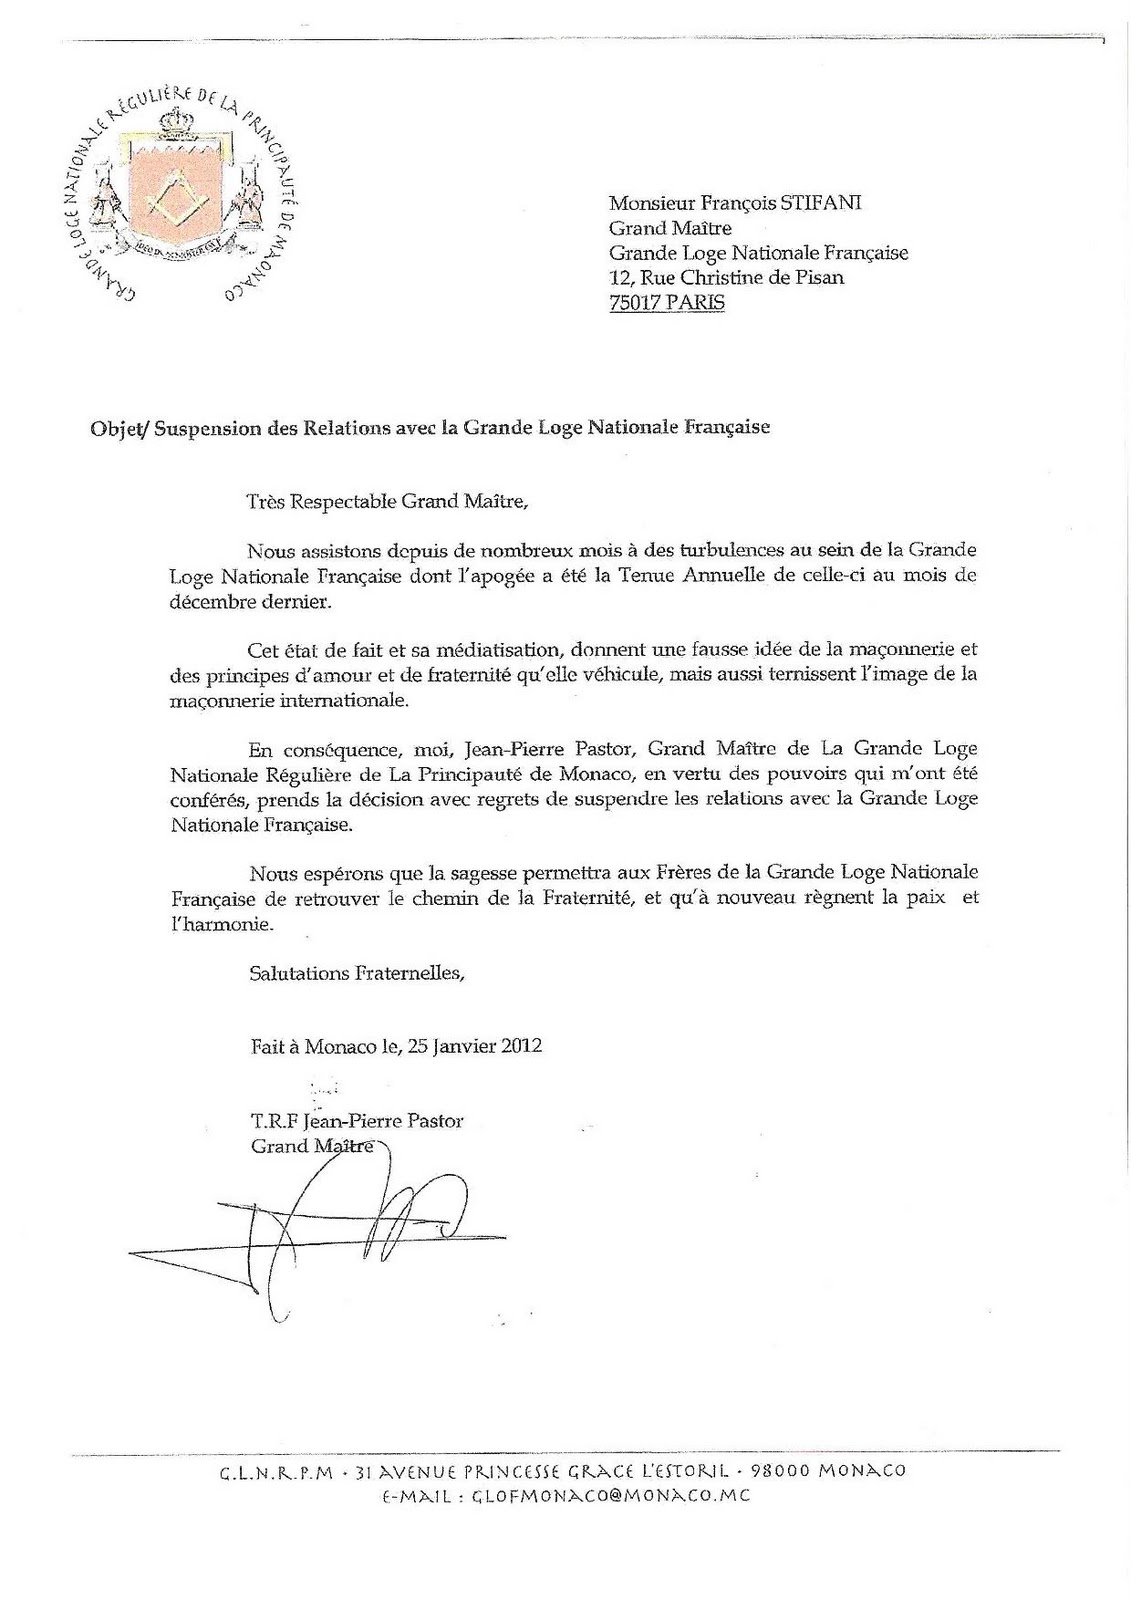 the monegasque grand lodge no longer recognizes stifani u0026 39 s